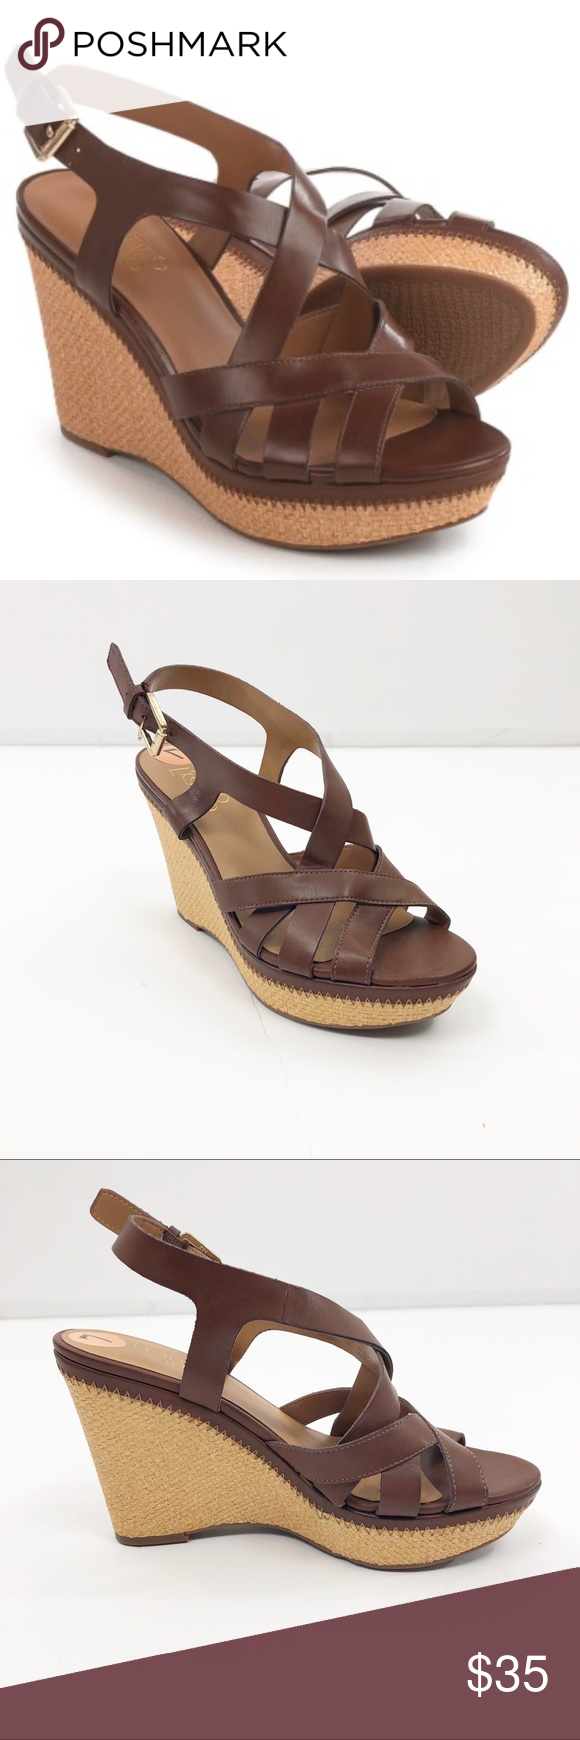 NWOB Franco Sarto Sashay Wedge Sandals Vegan leath NWOB Franco Sarto Sashay Wedge Sandals Size 7 - Vegan Leather  Do a little dance, girl; Franco Sarto's Sashay wedge sandal basically calls for it with its strappy, swooping upper, tall, platform silhouette and eye-catching basket-weave-texture wedge heel.  Soft faux-leather straps Buckle-adjustable ankle strap Open back Cushioned faux-leather footbed Platform and tall wedge heel with basket-weave texture Low-profile outsole Upper: Man-made mater #lowwedgesandals